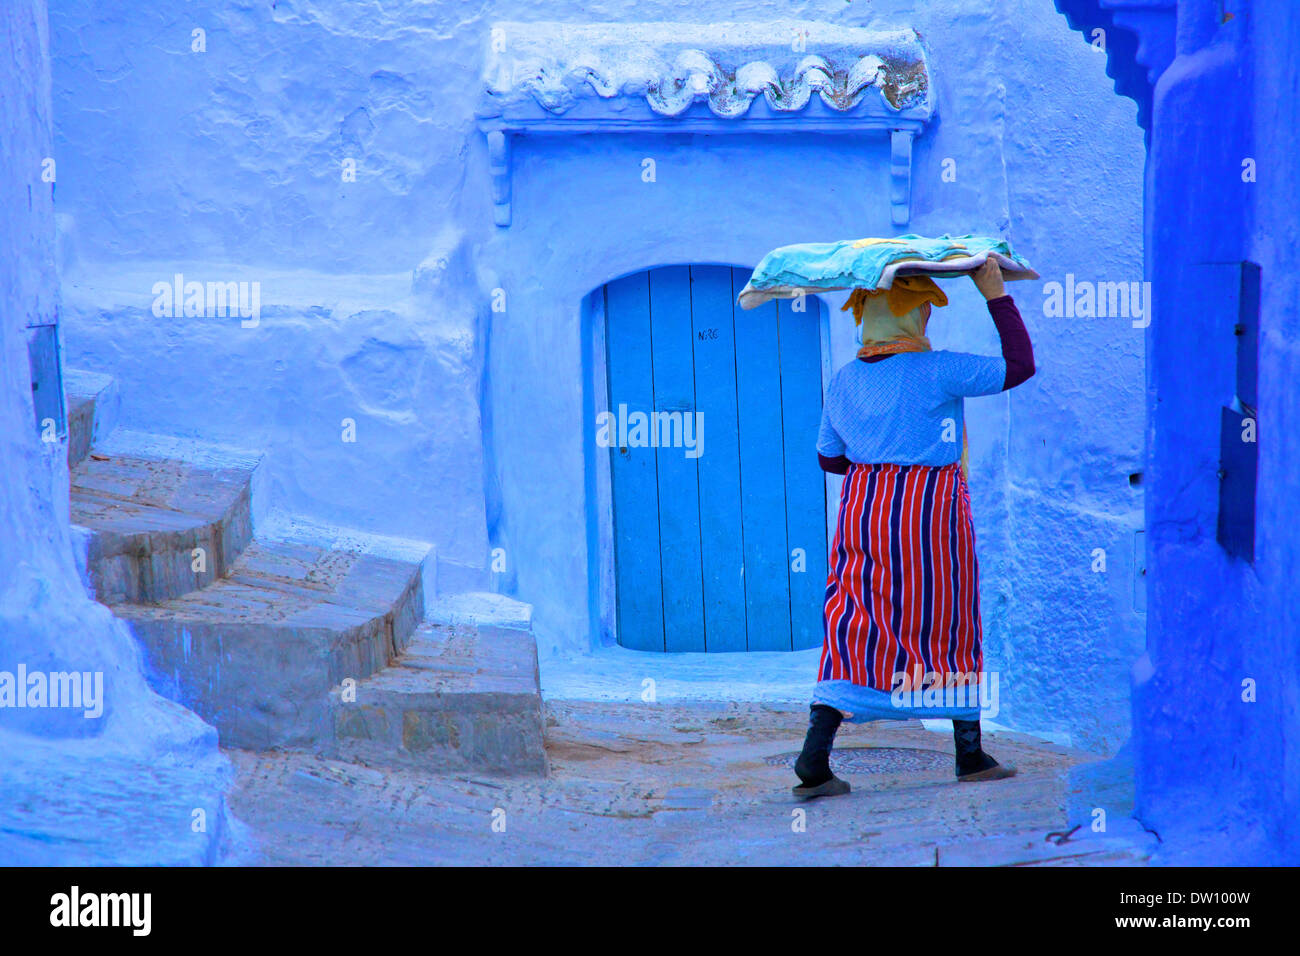 Woman In Traditional Clothing Carrying A Tray of Bread Dough, Chefchaouen, Morocco, North Africa Stock Foto